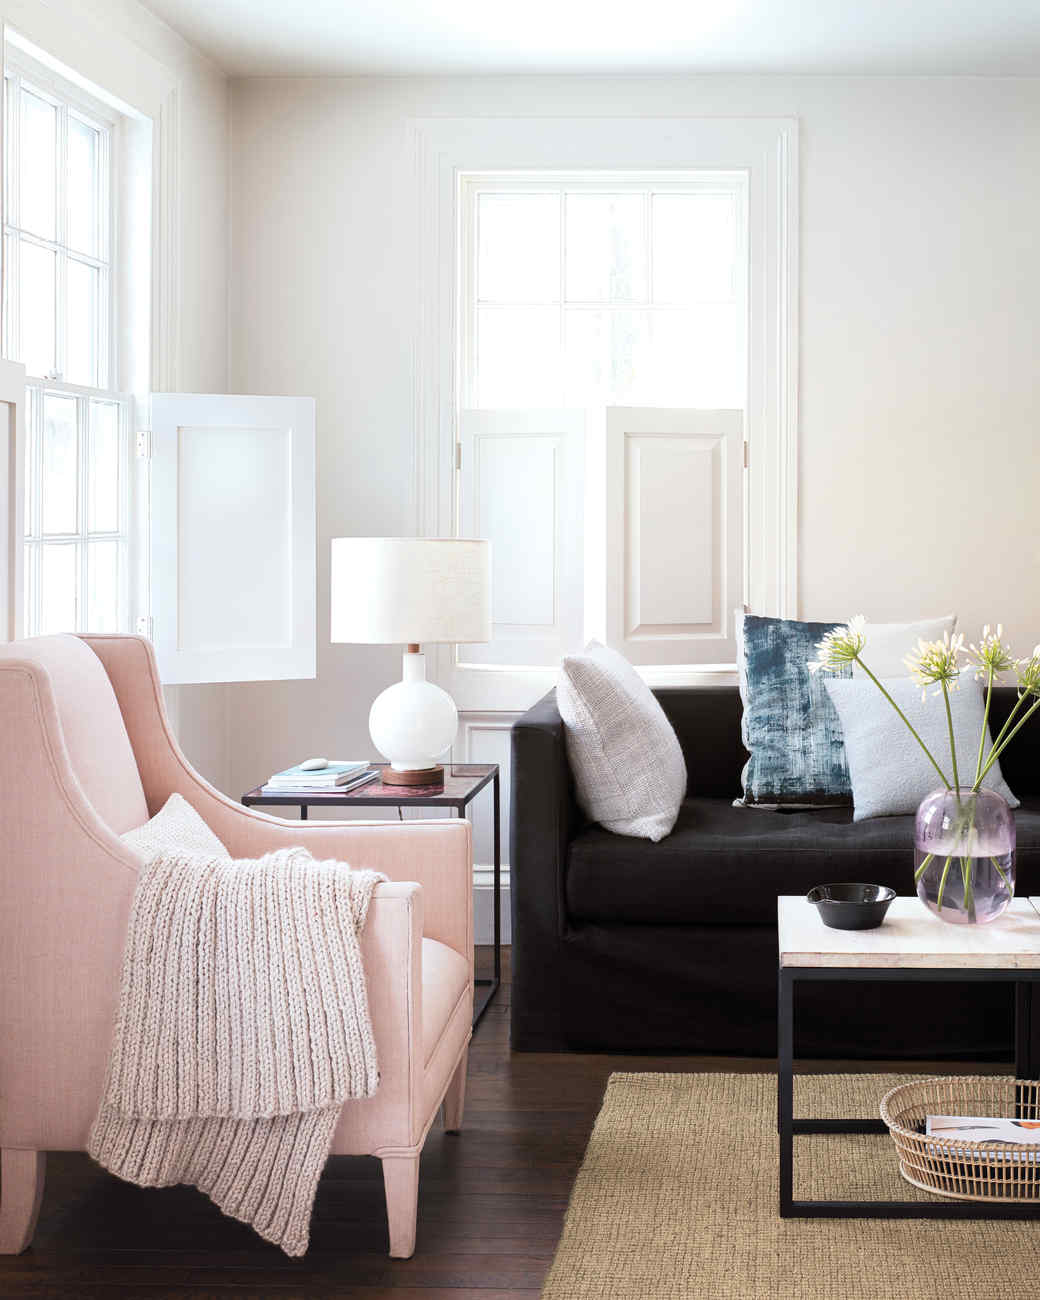 Banish clutter how to organize every room in your home martha stewart - How to organize living room ...